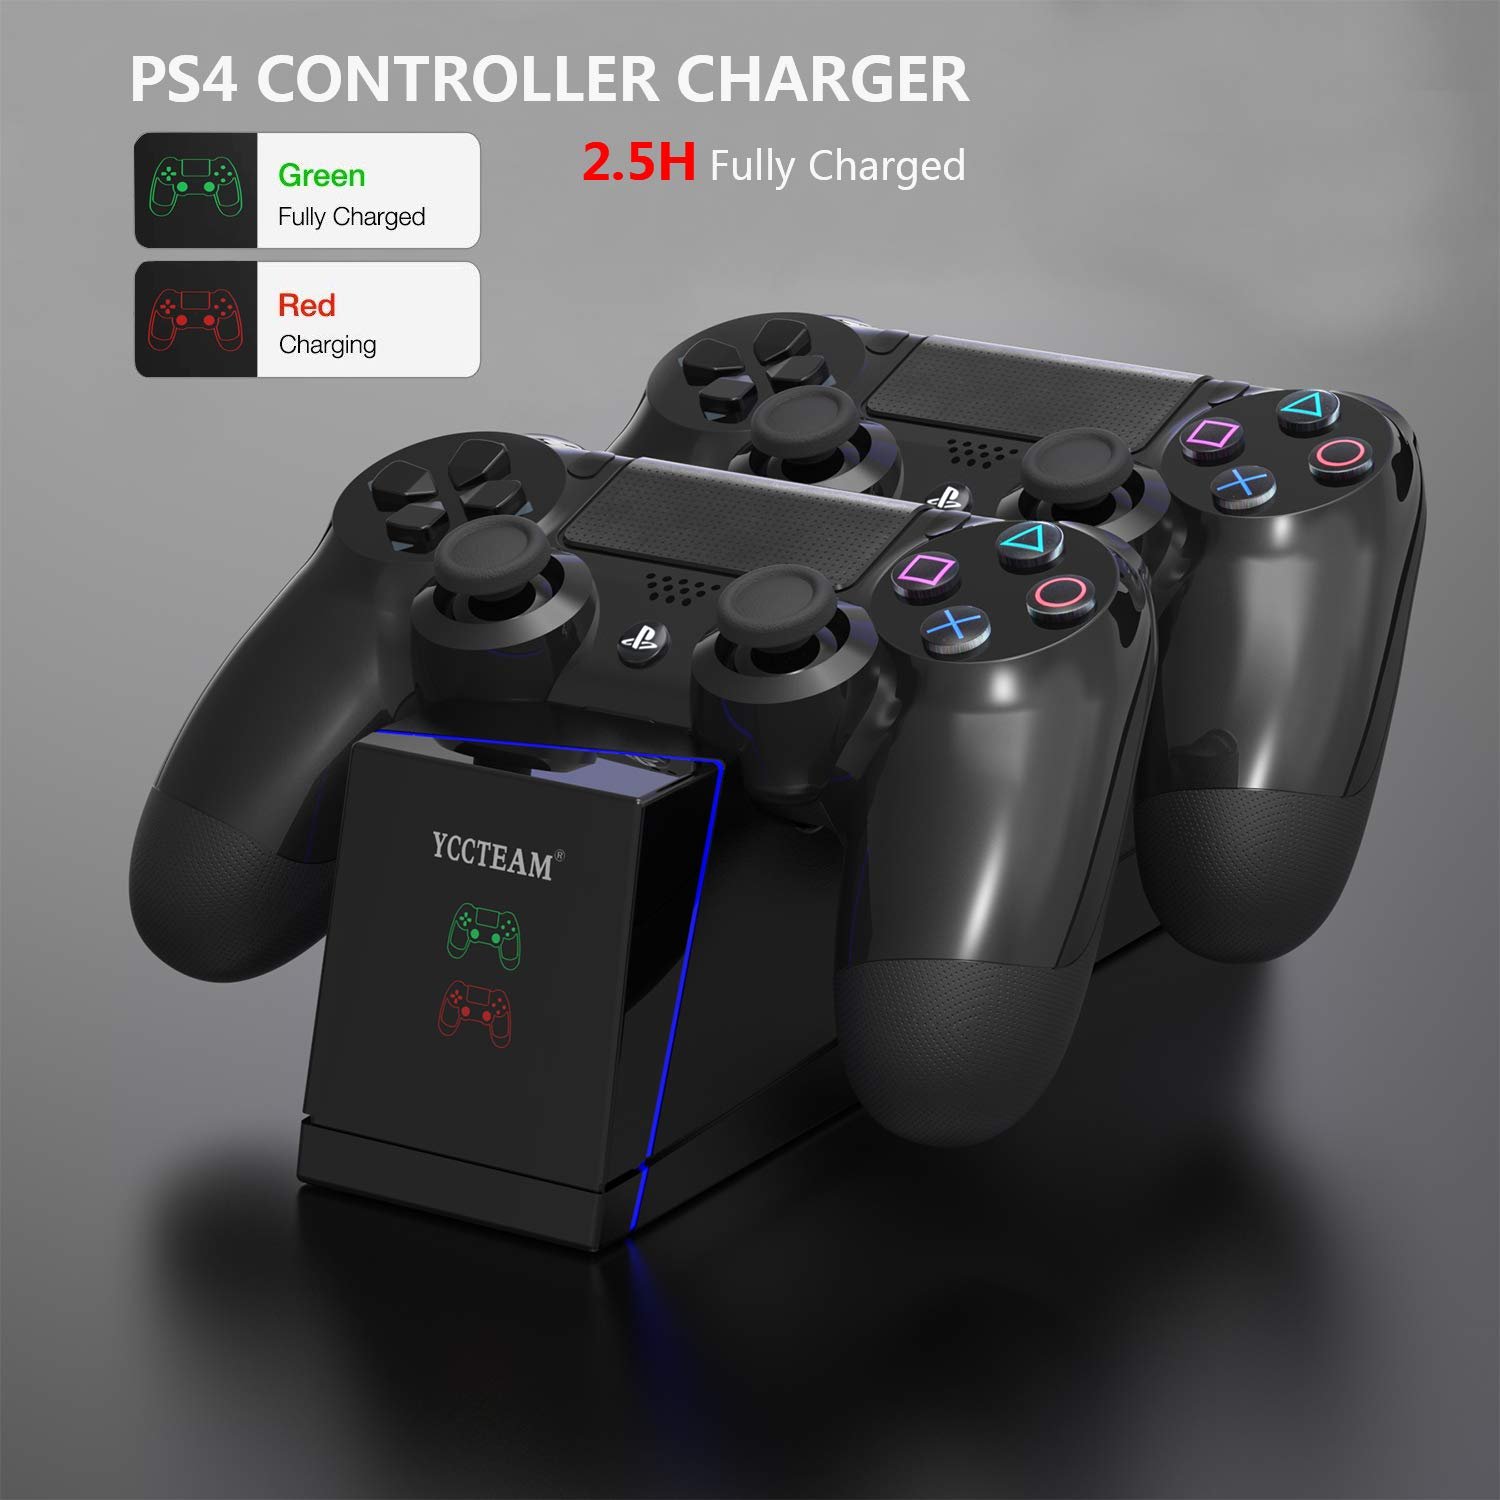 Amazon.com: PS4 Controller Charger,DualShock PS4 Controller ...